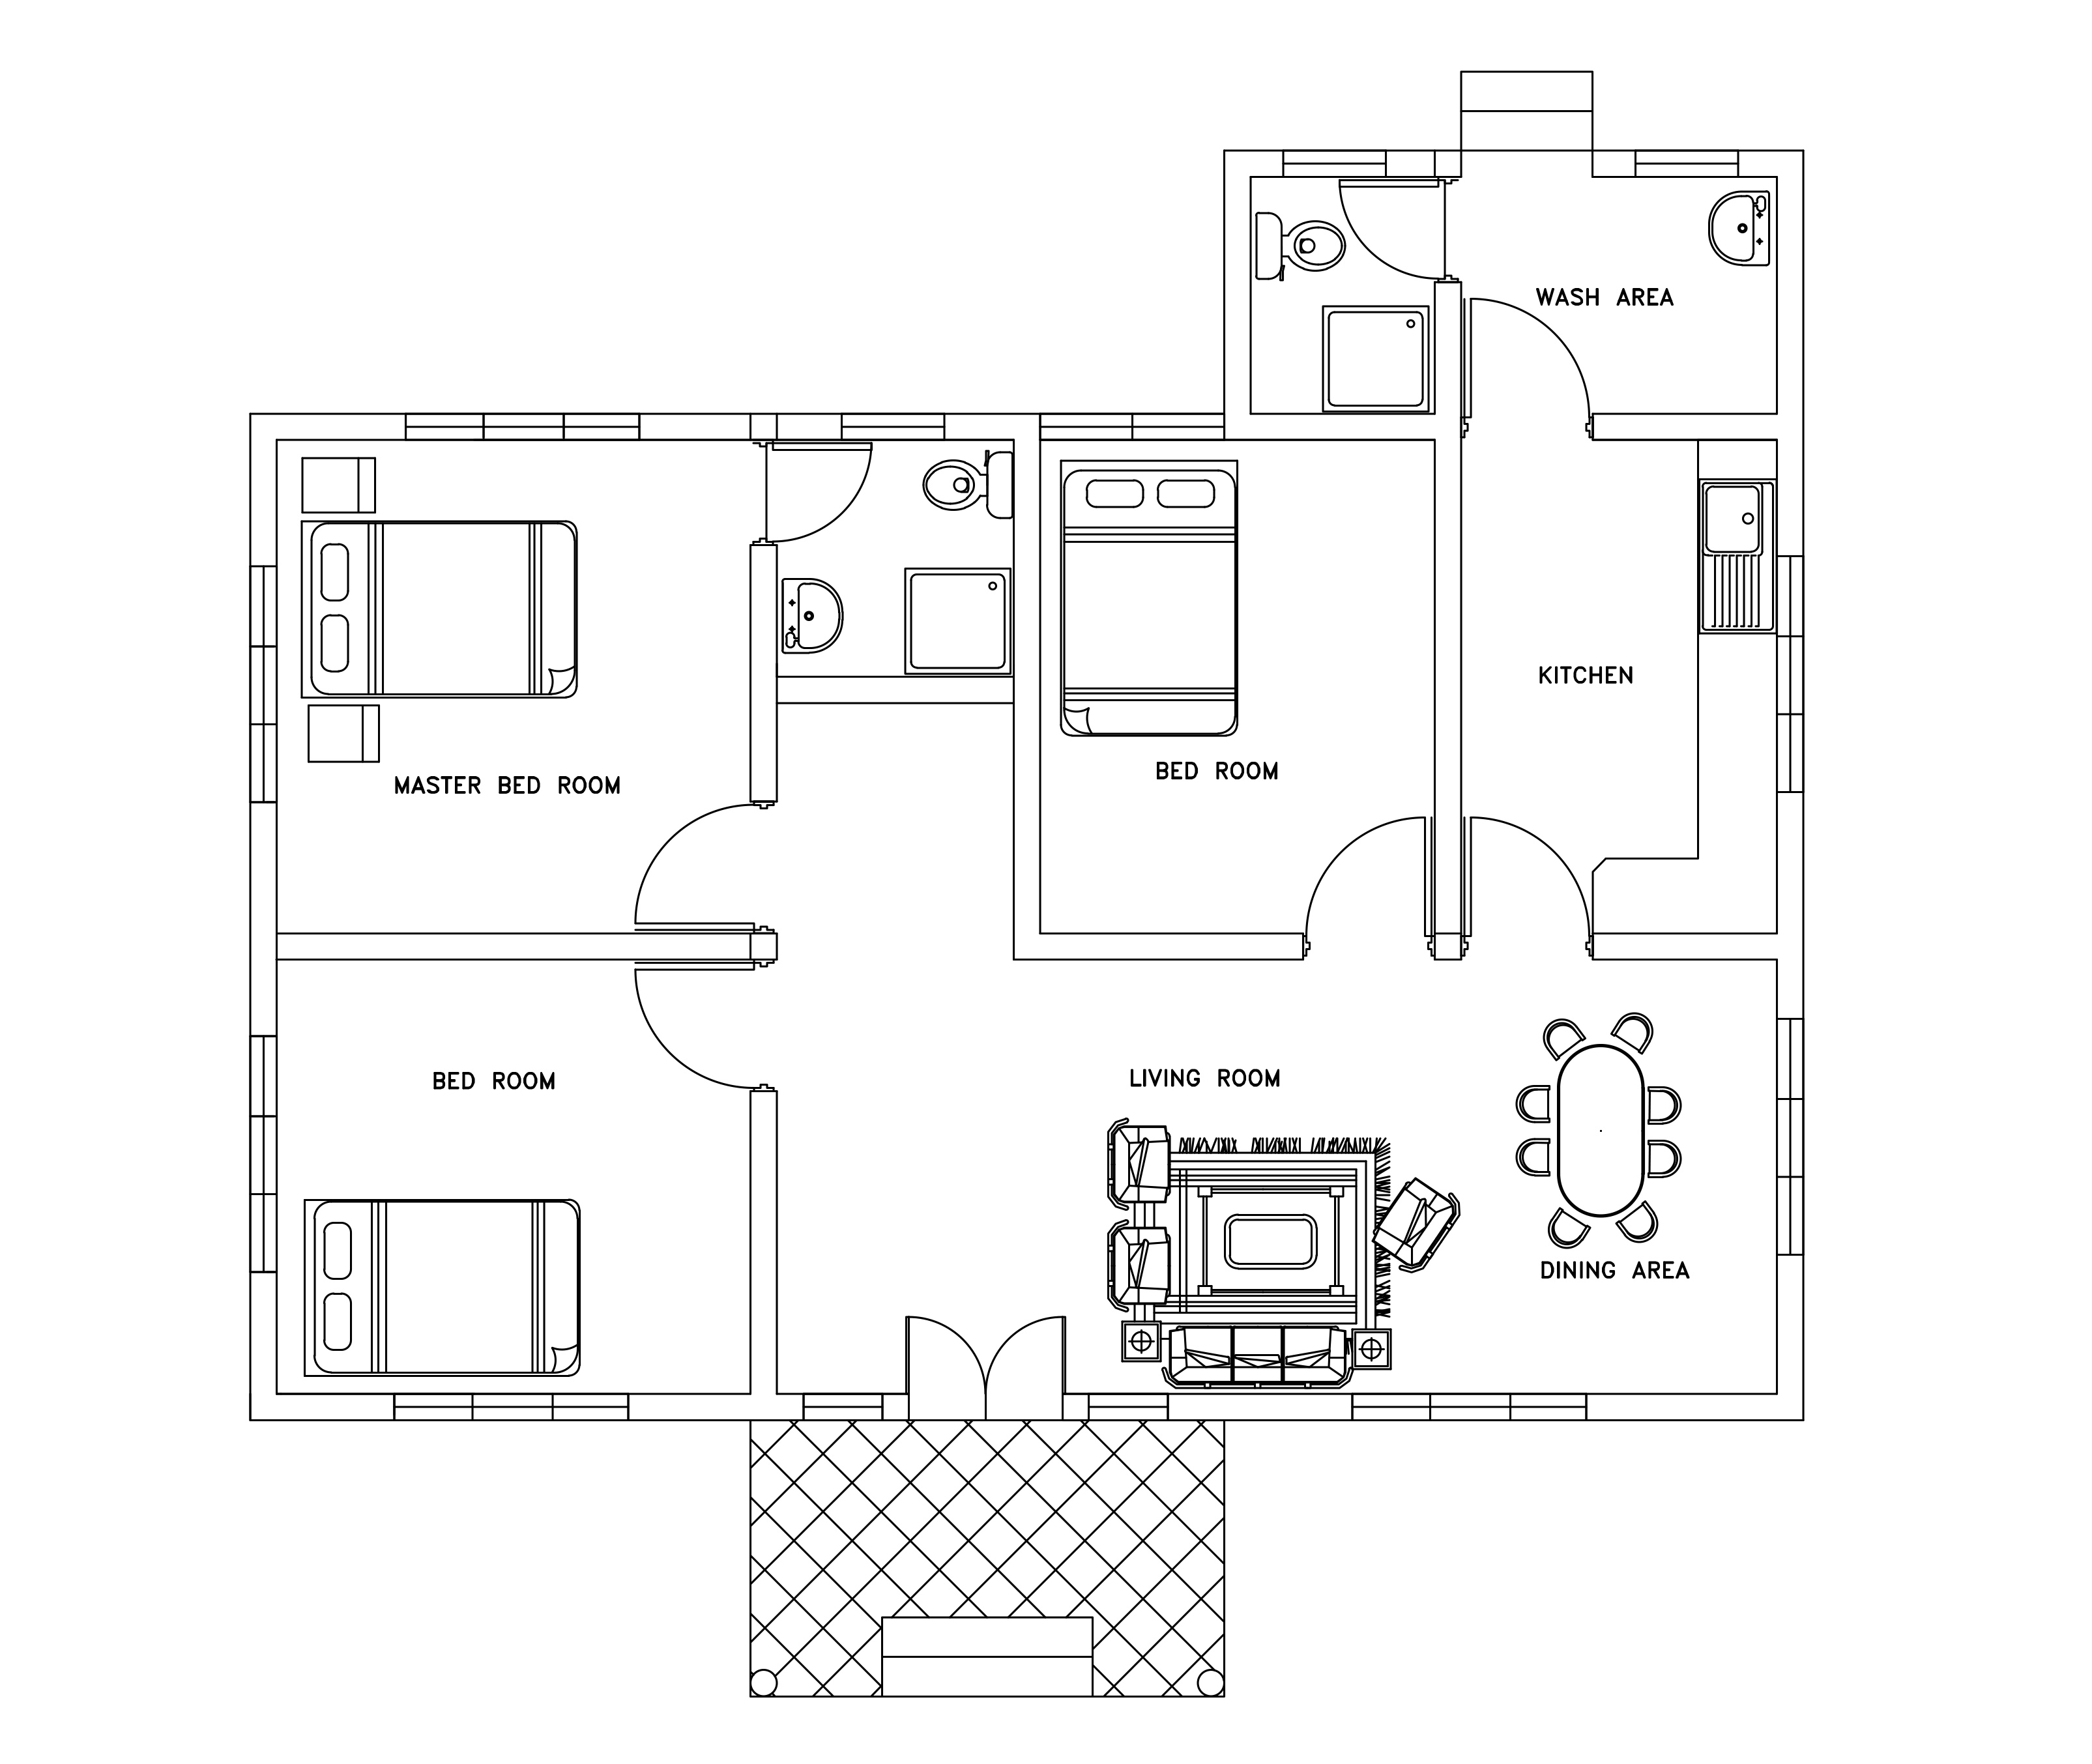 Three bed room small house plan dwg net cad blocks and House floor plan design software free download